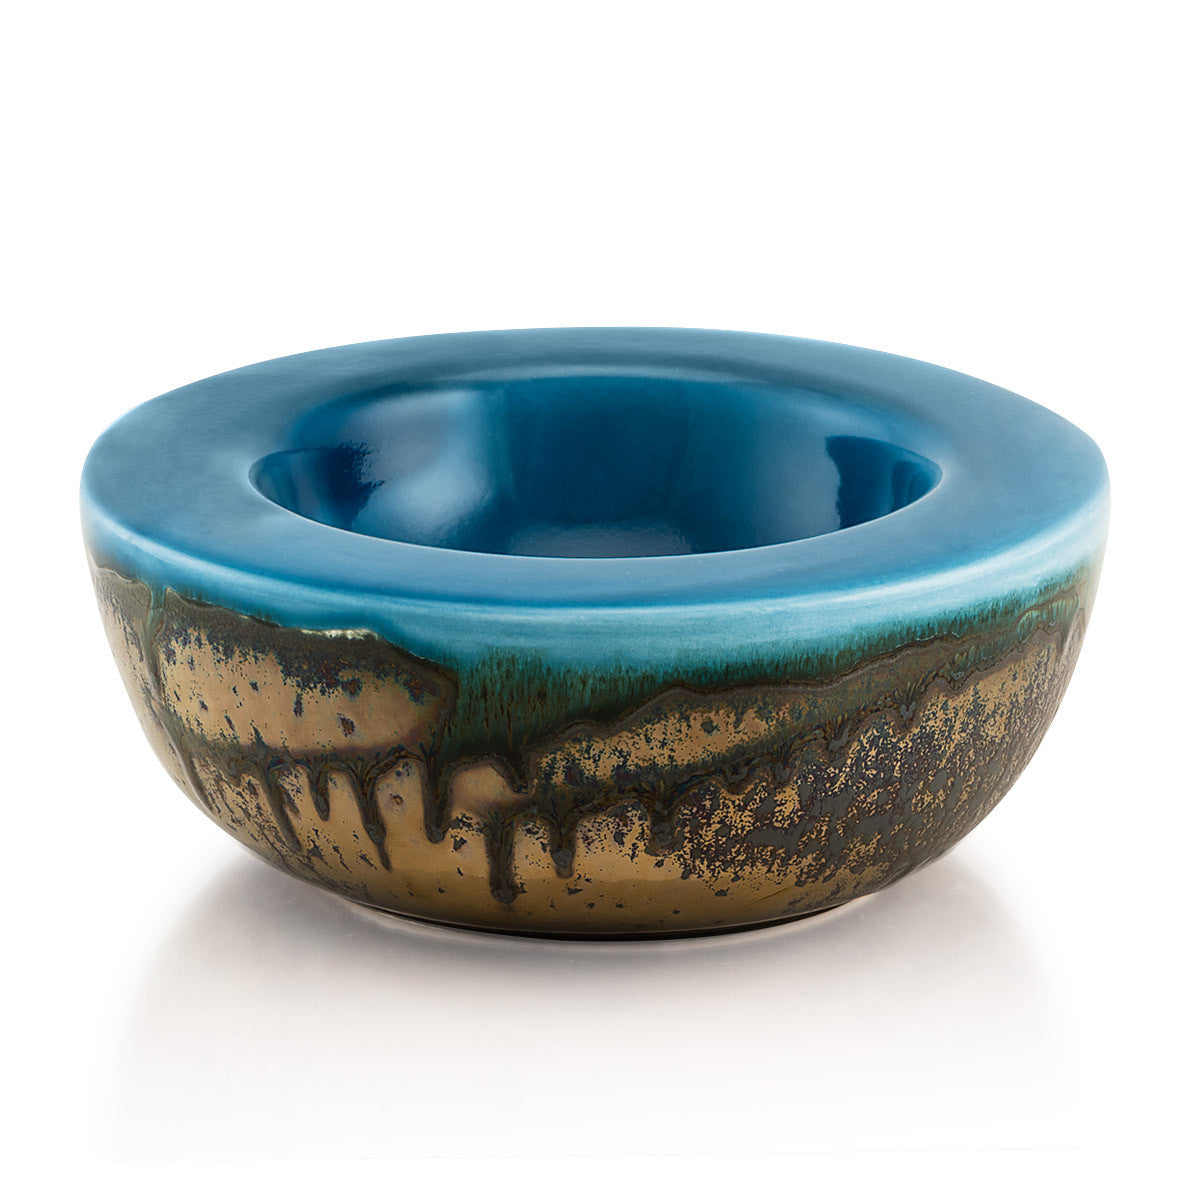 Ceramic bowls-modern bowl-deep blue-burnished bronze-reactive glaze